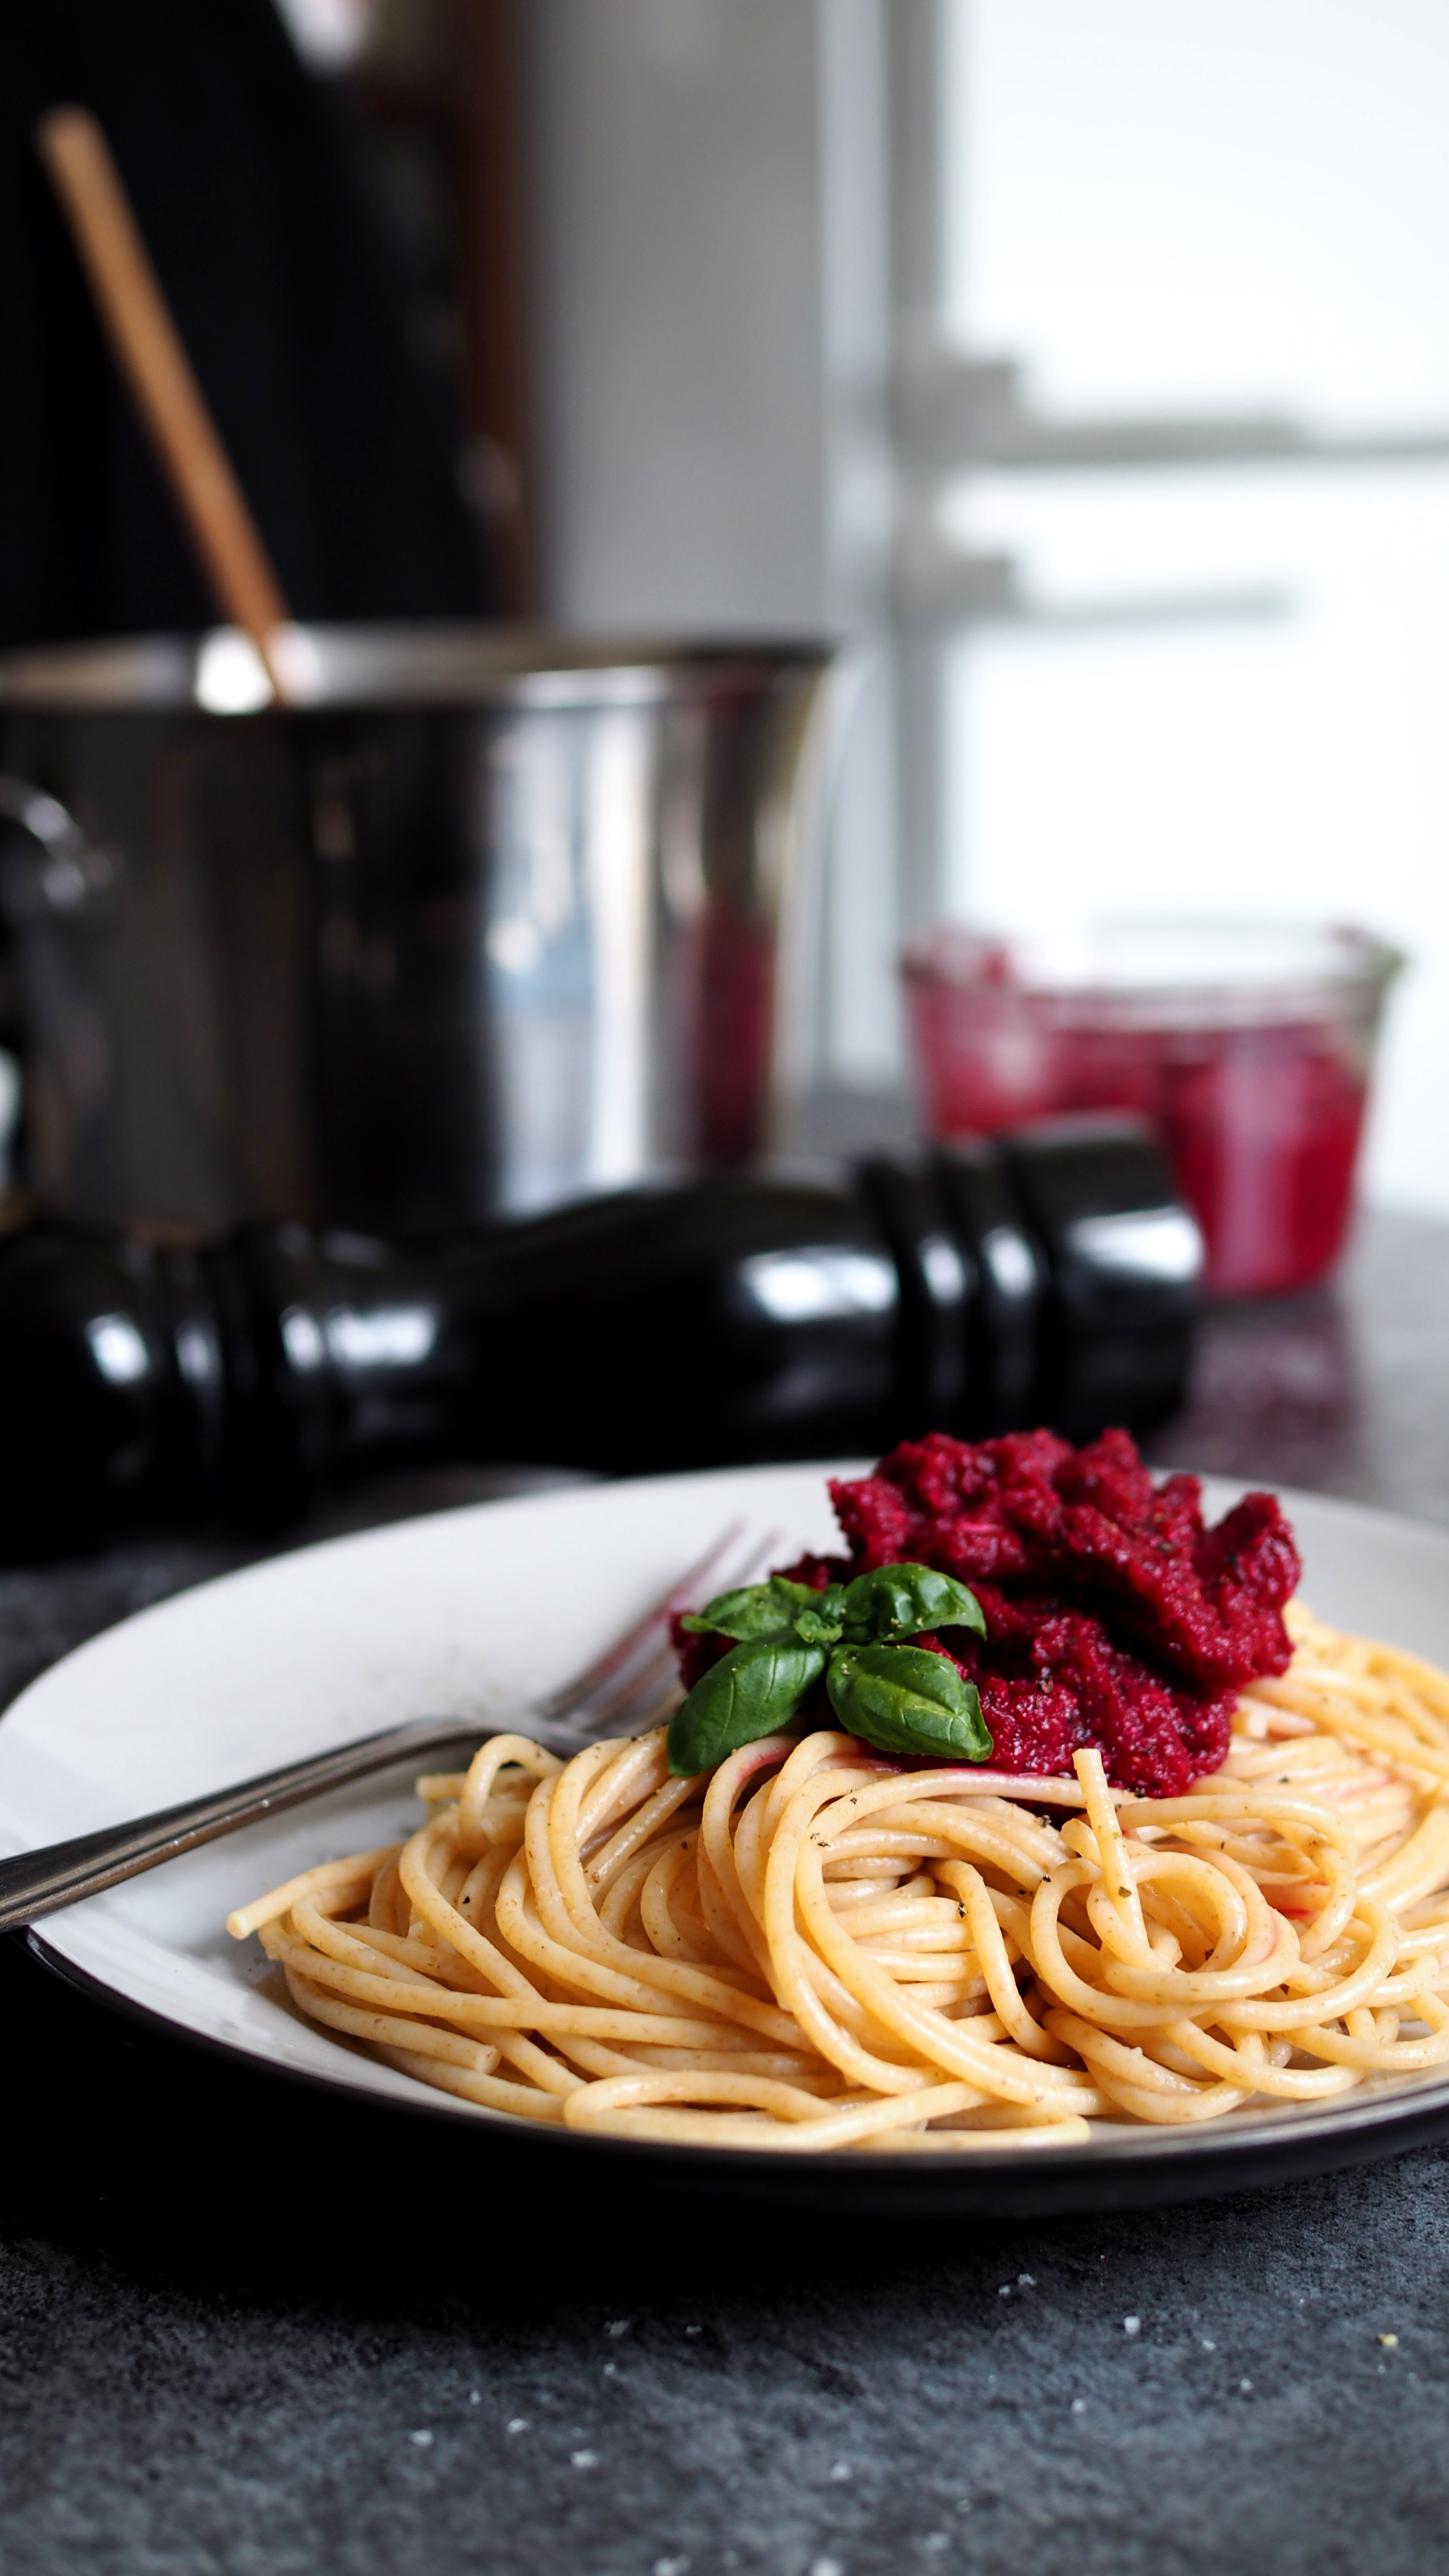 Rote Beete Pesto vegan